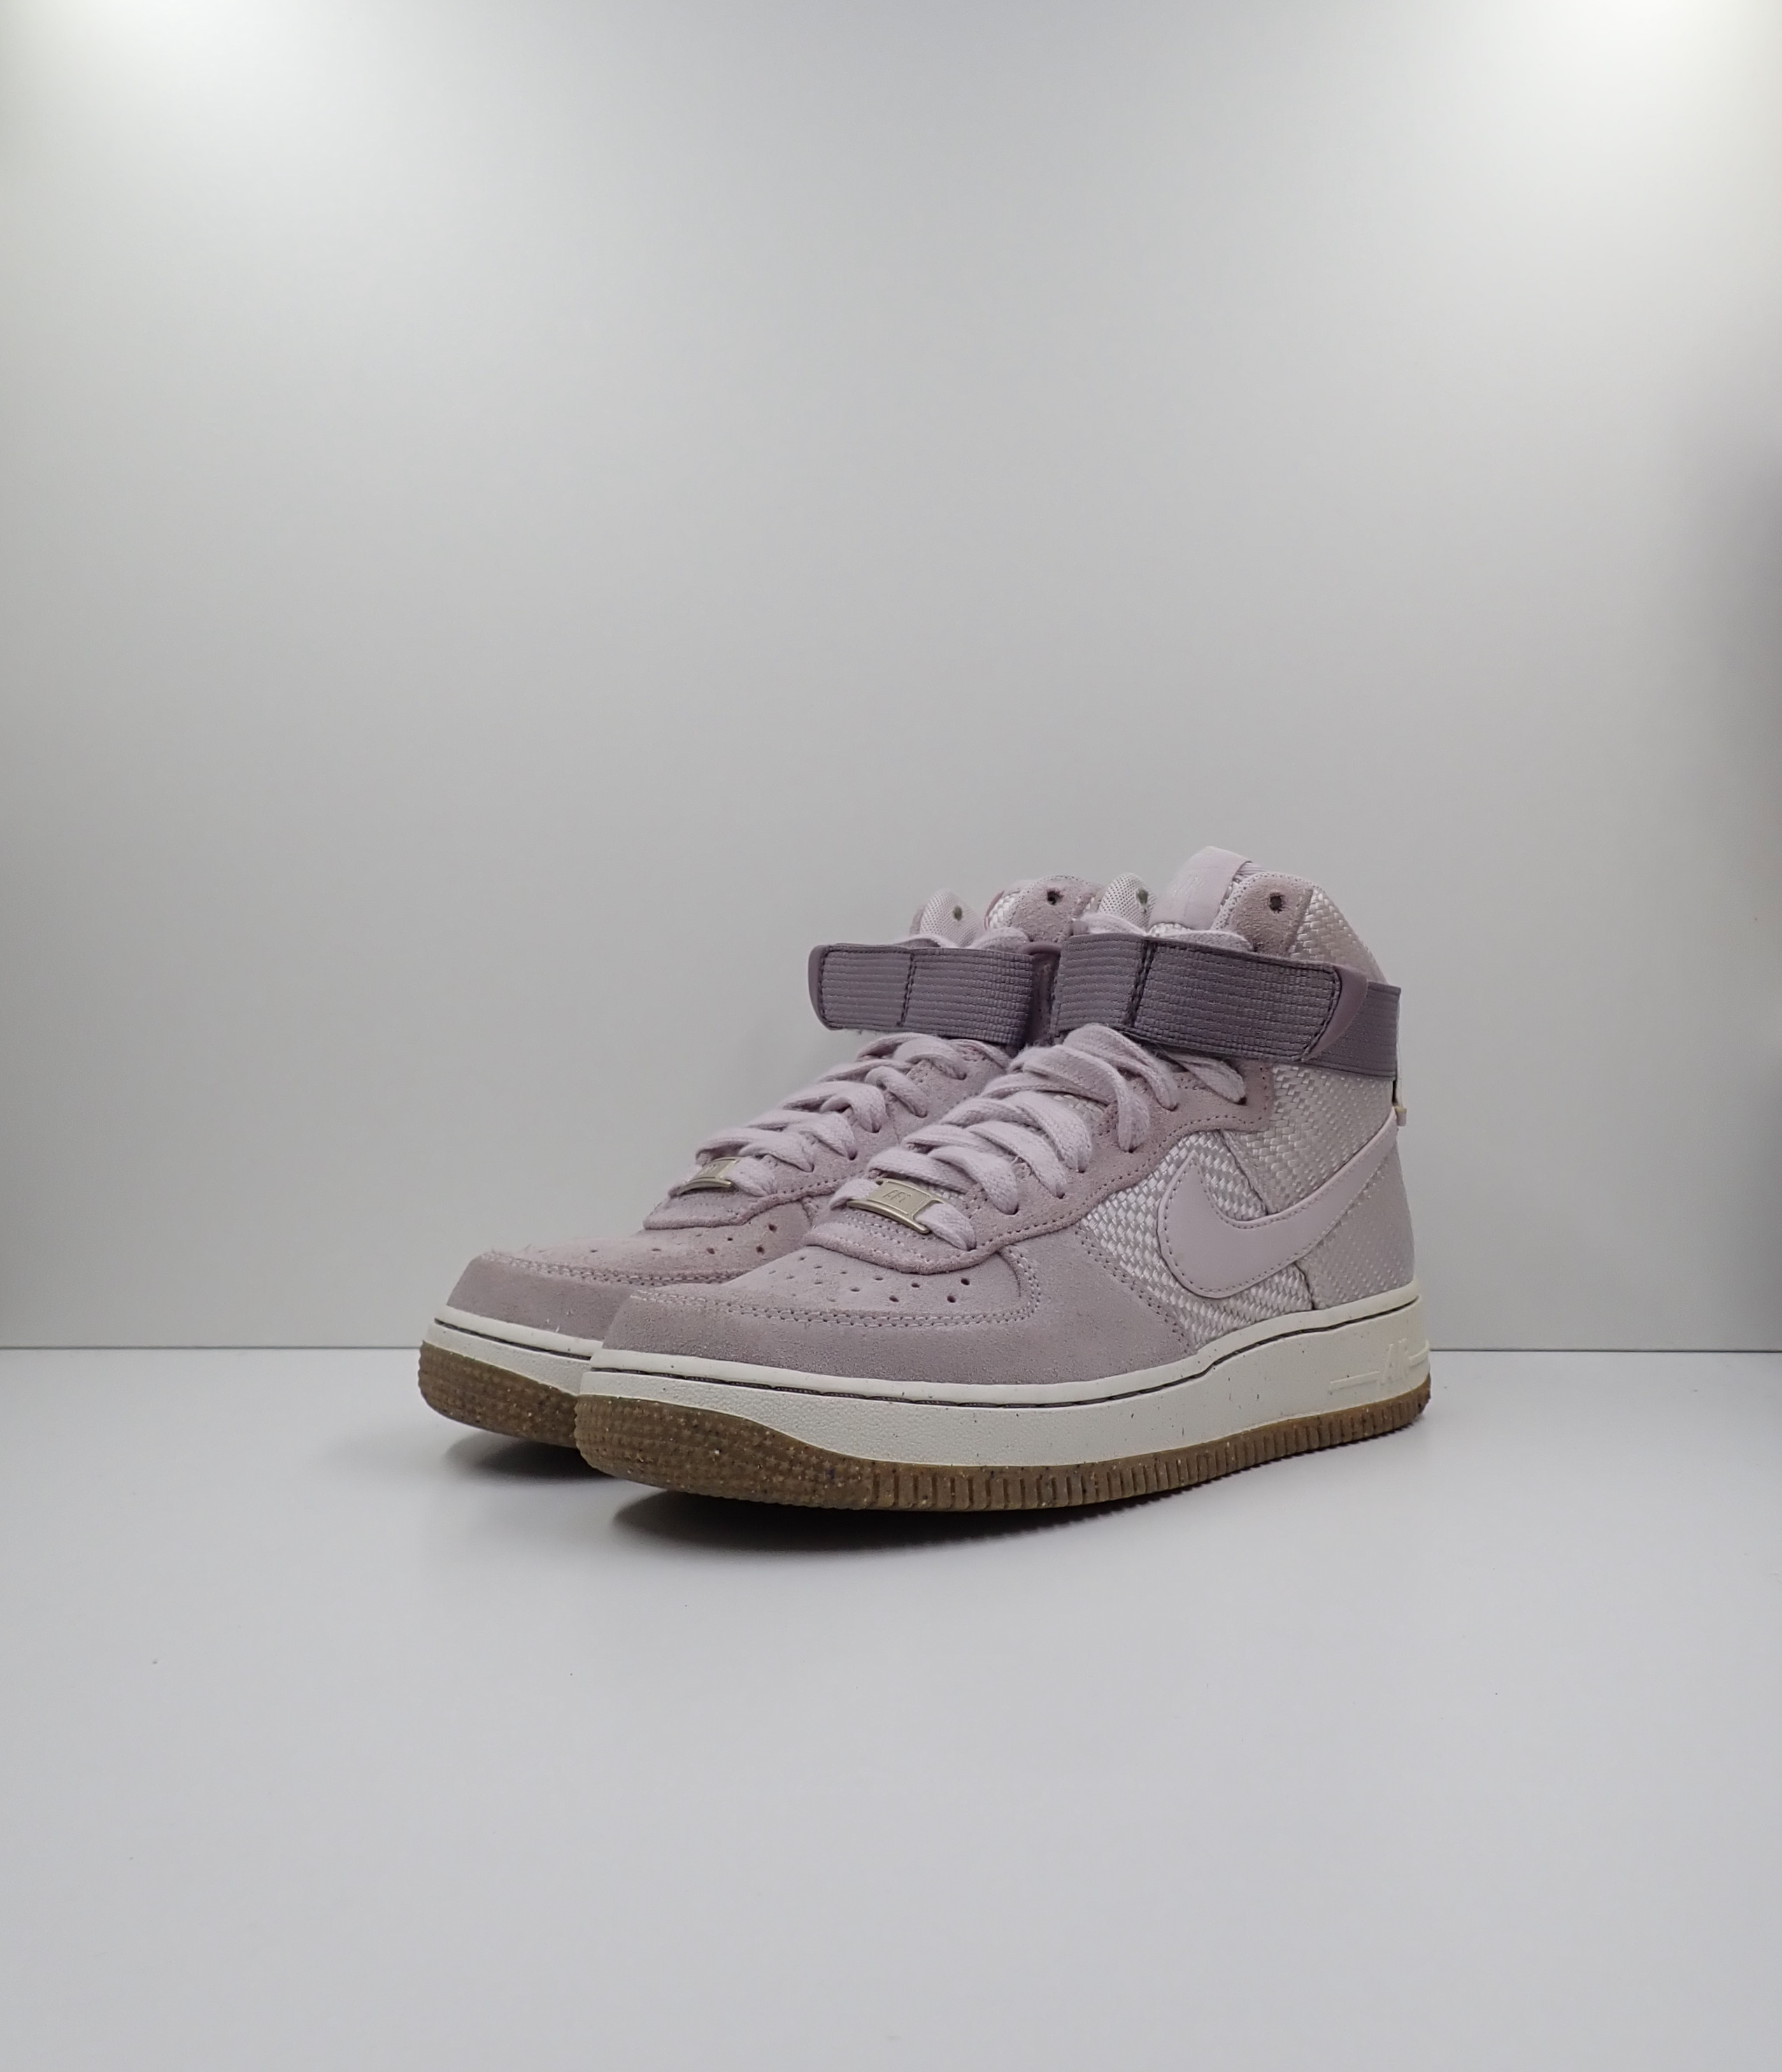 Nike Air Force 1 Hi Prm Bleached Lilac Lilas Delave (W)